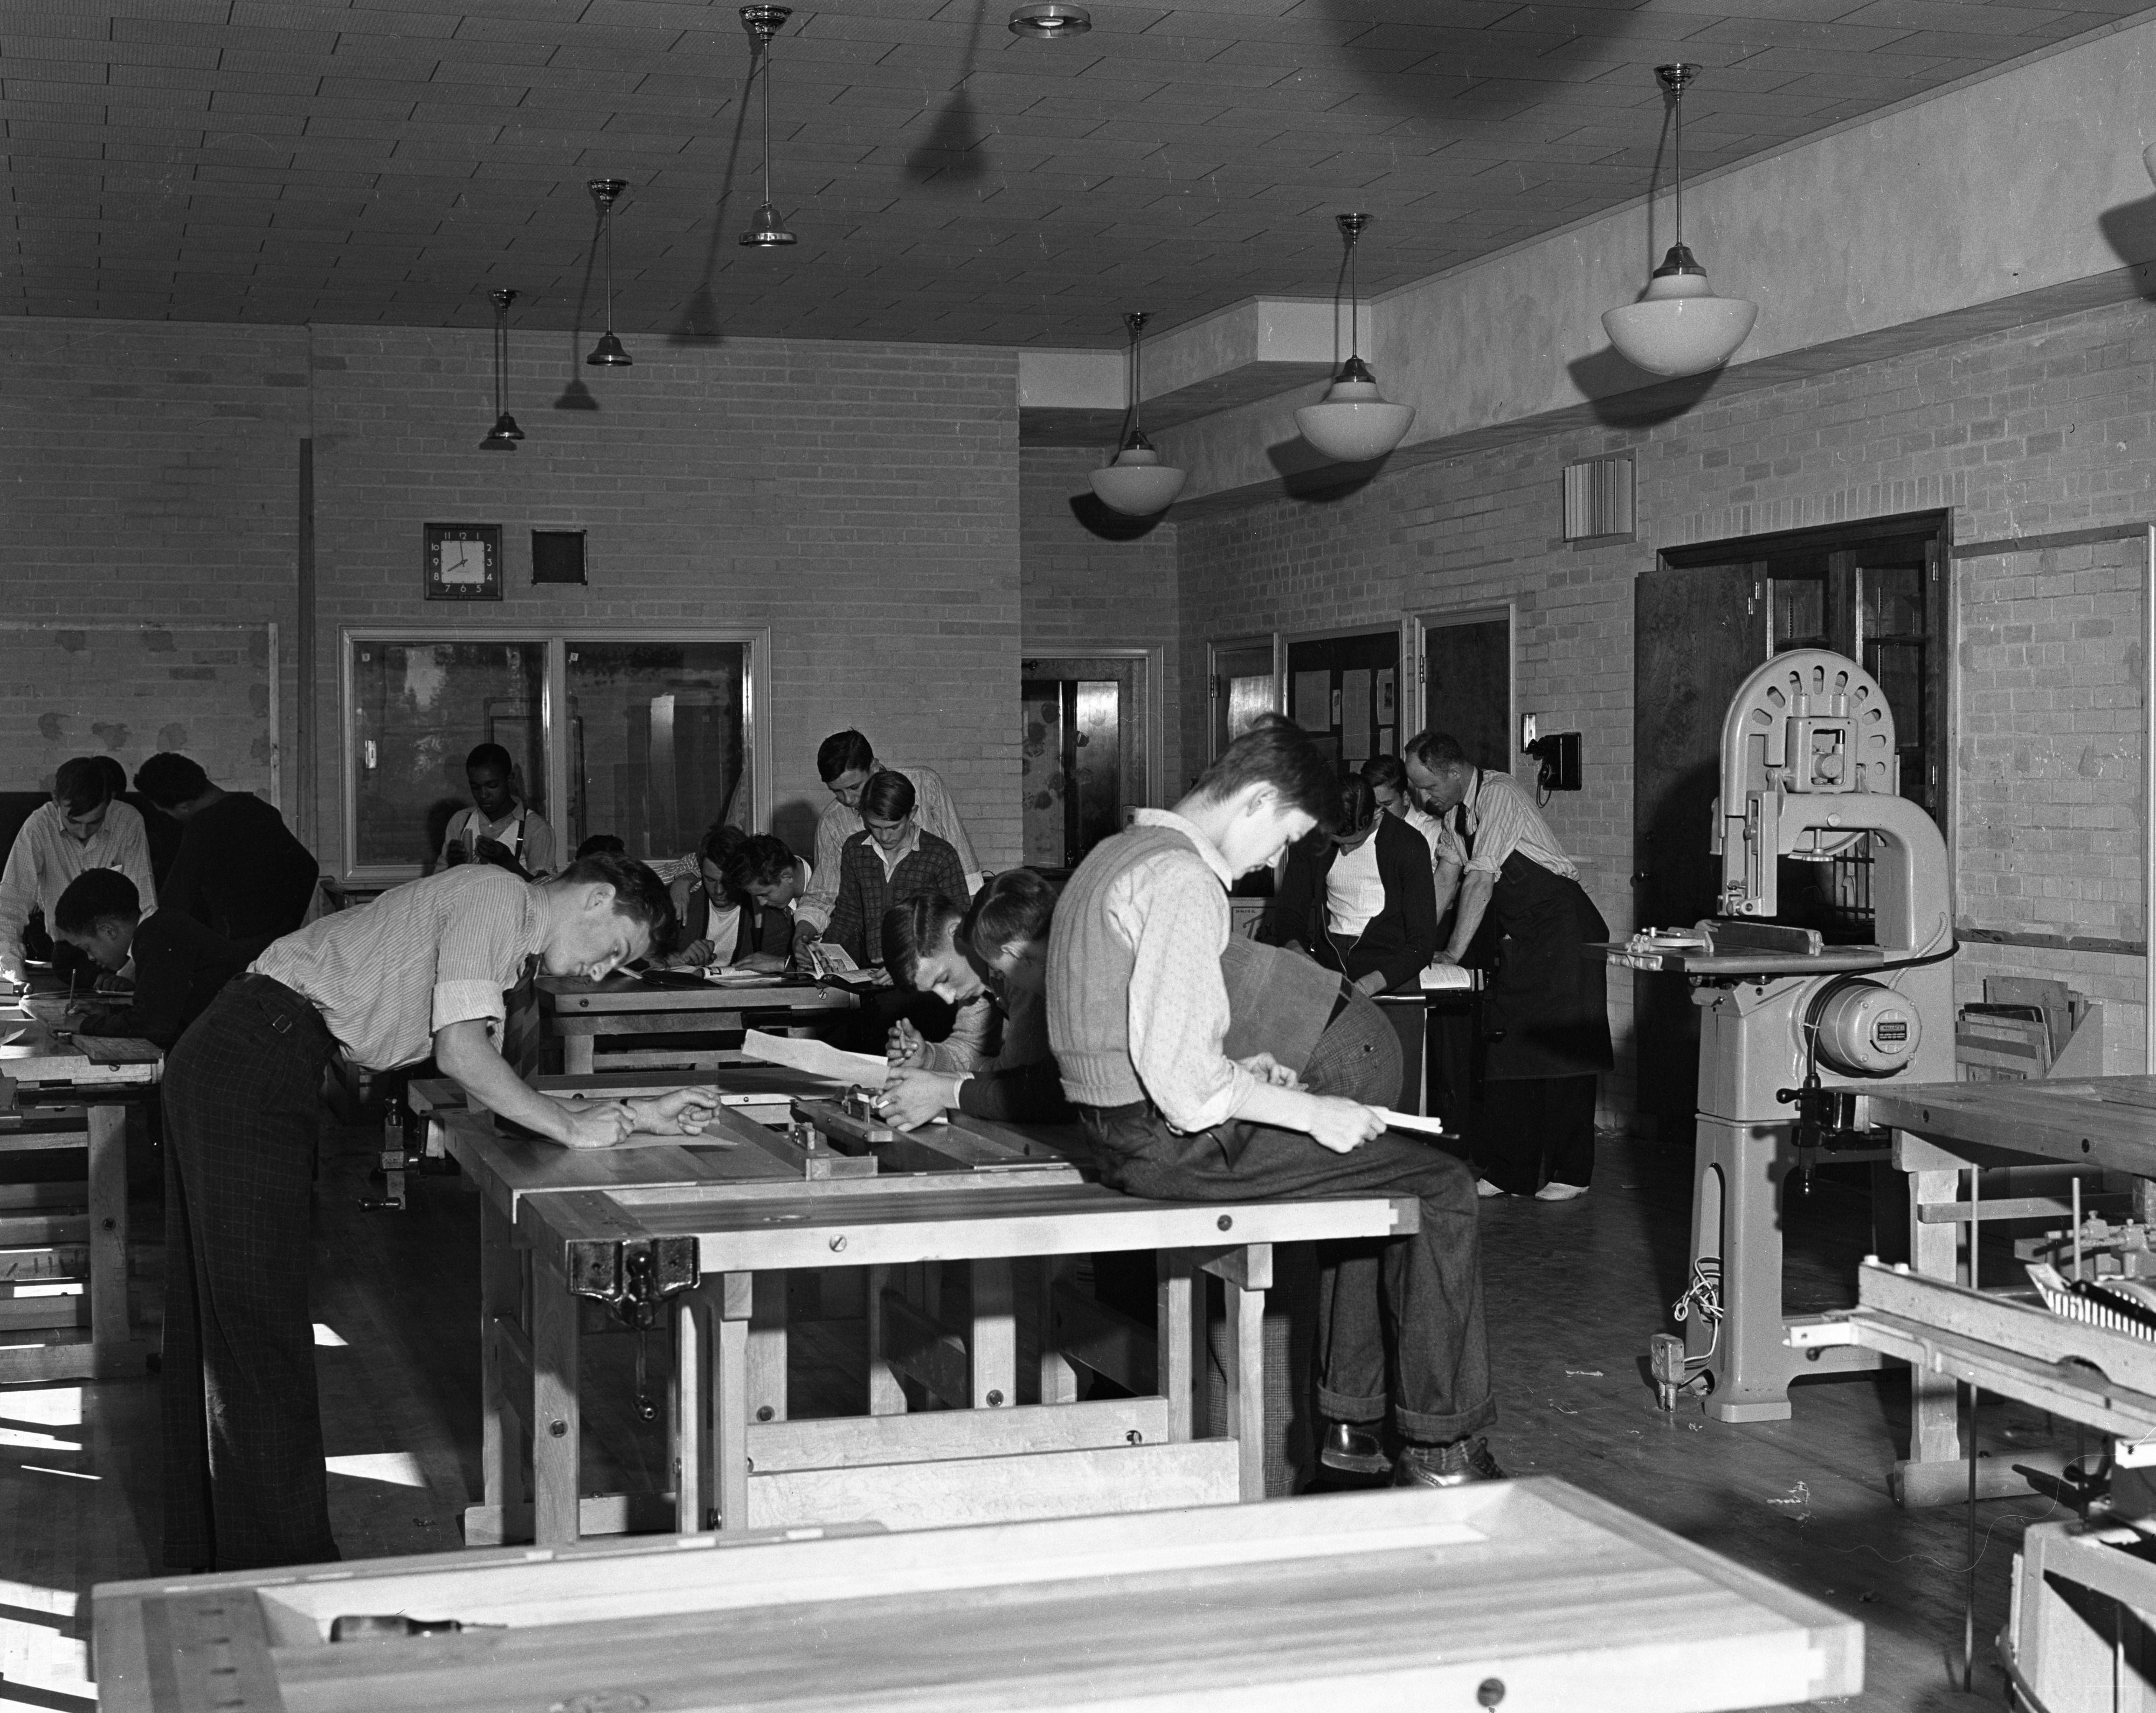 A classroom in the new building addition of Ann Arbor High School, 105 S State St, September 1939 image